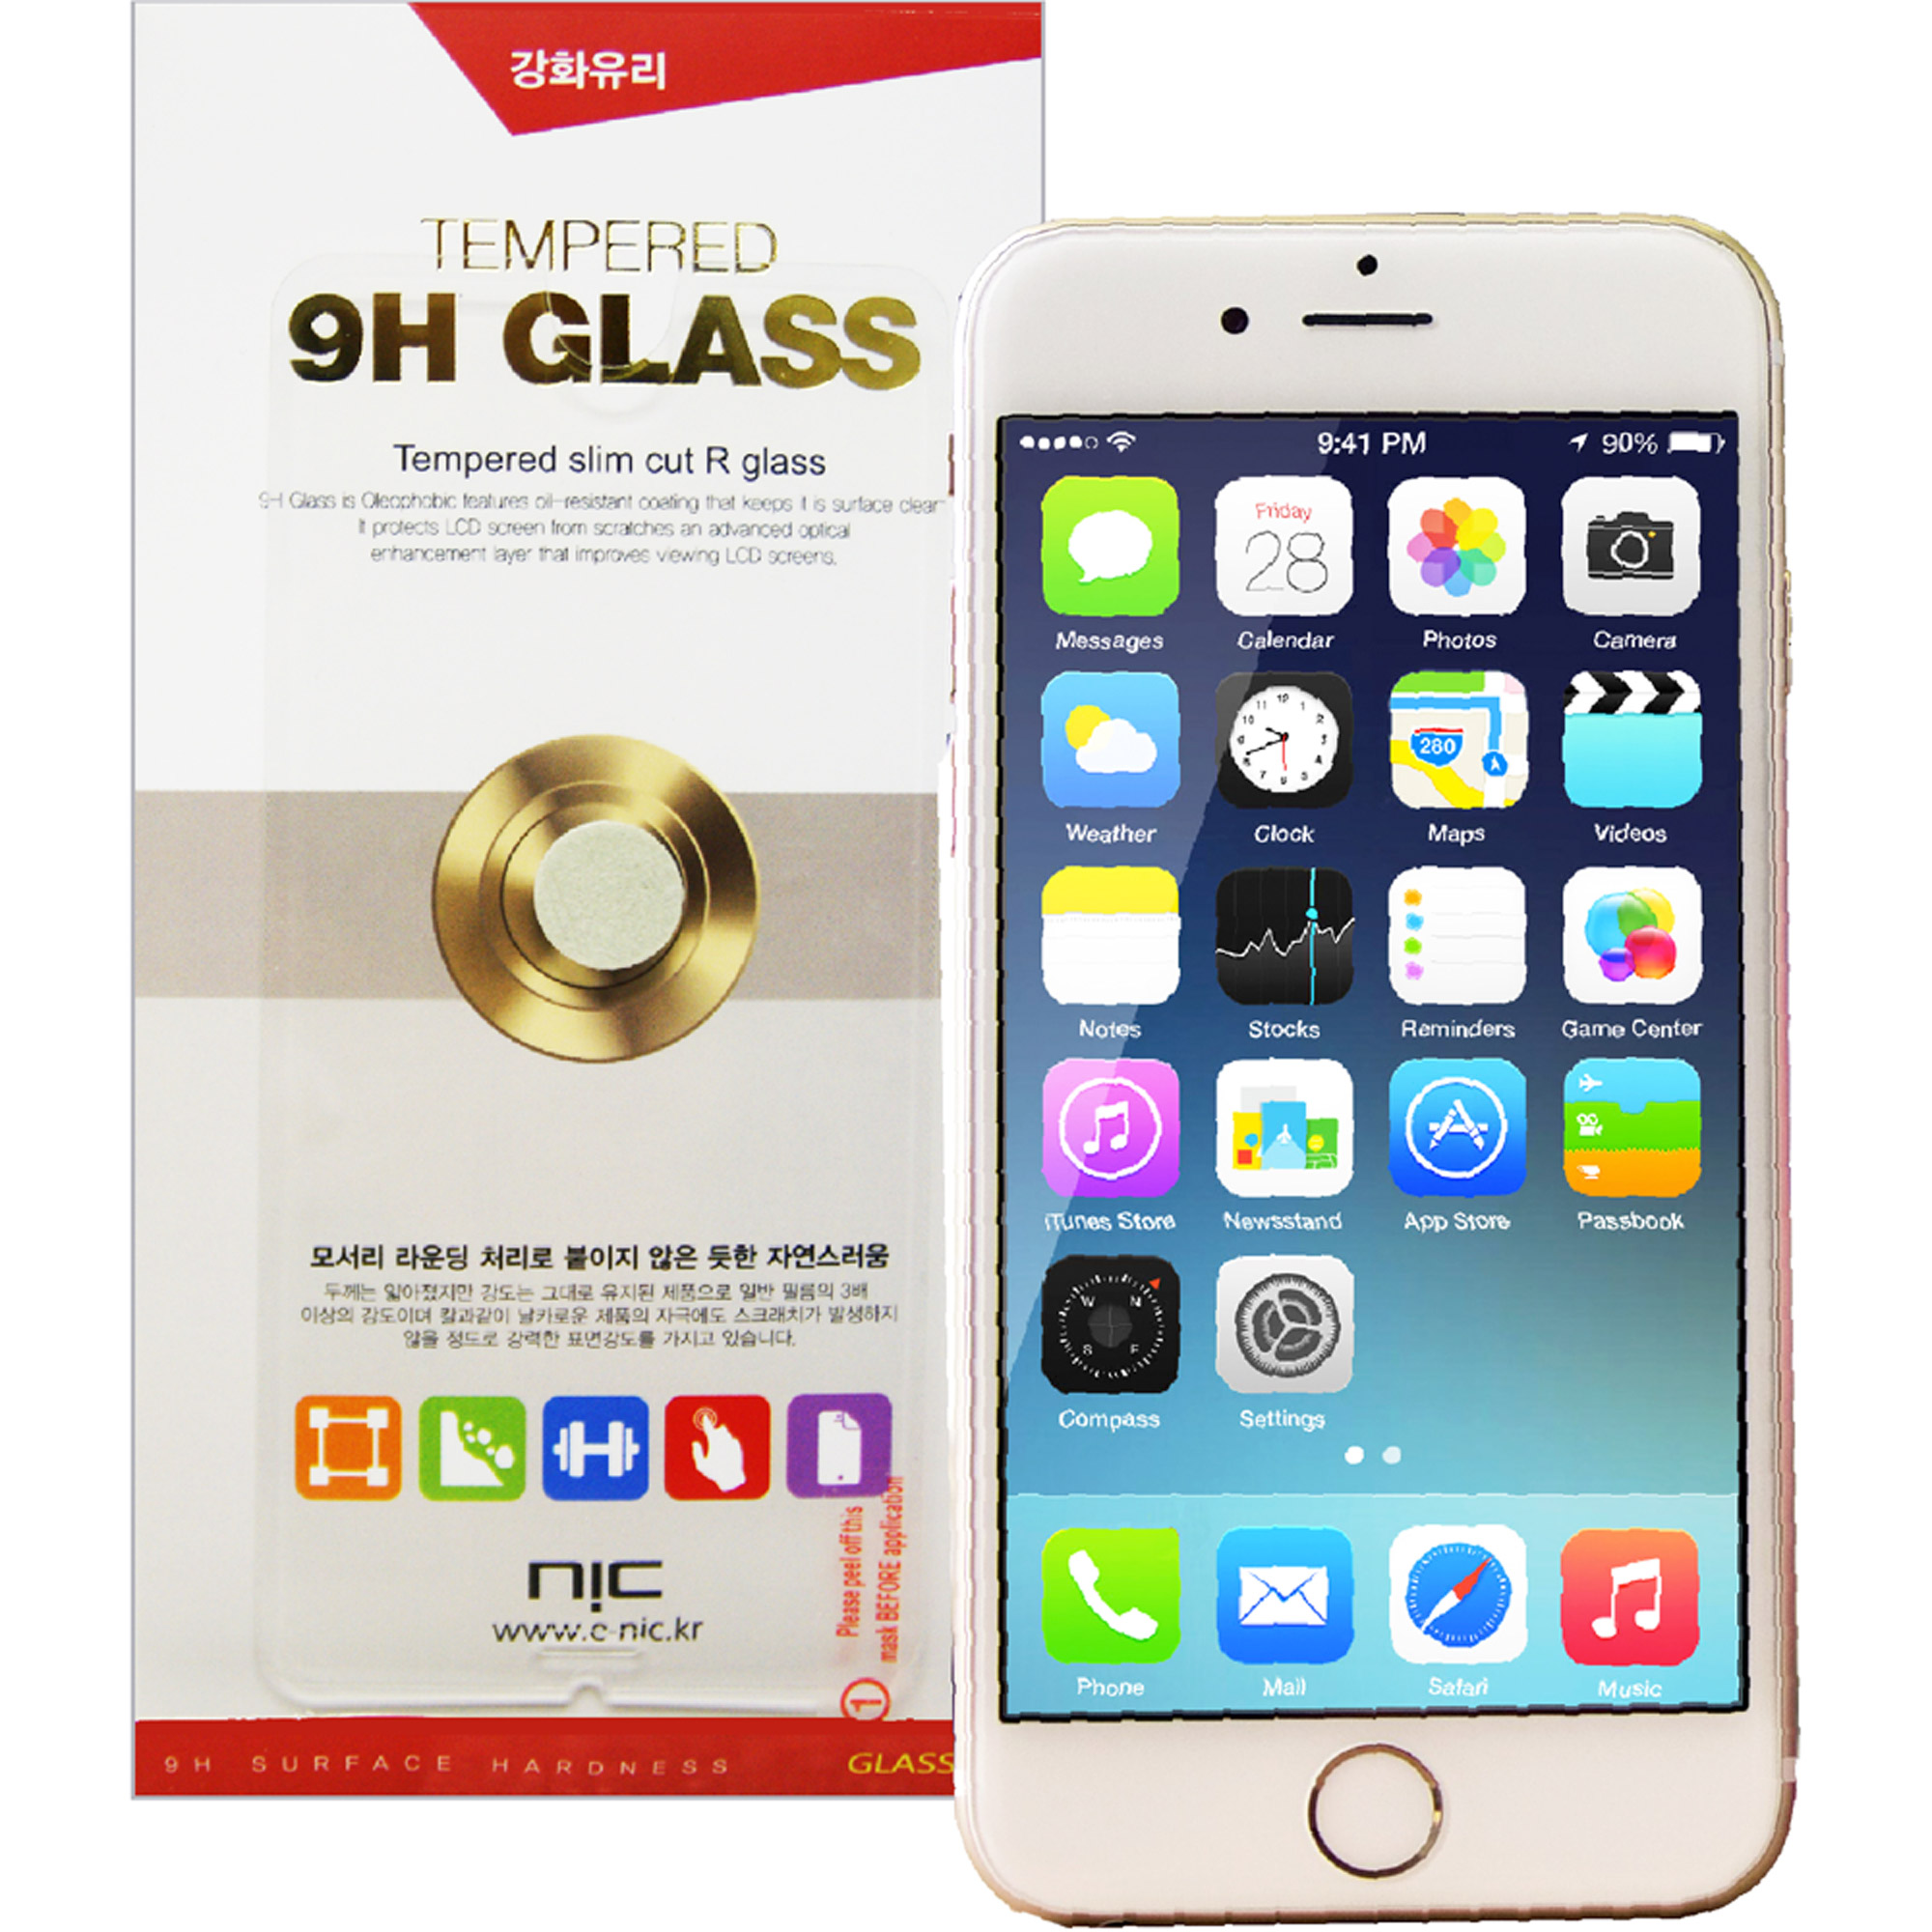 NIC Glasstic 9H Tempered Glass Screen Protector for Apple iPhone 6